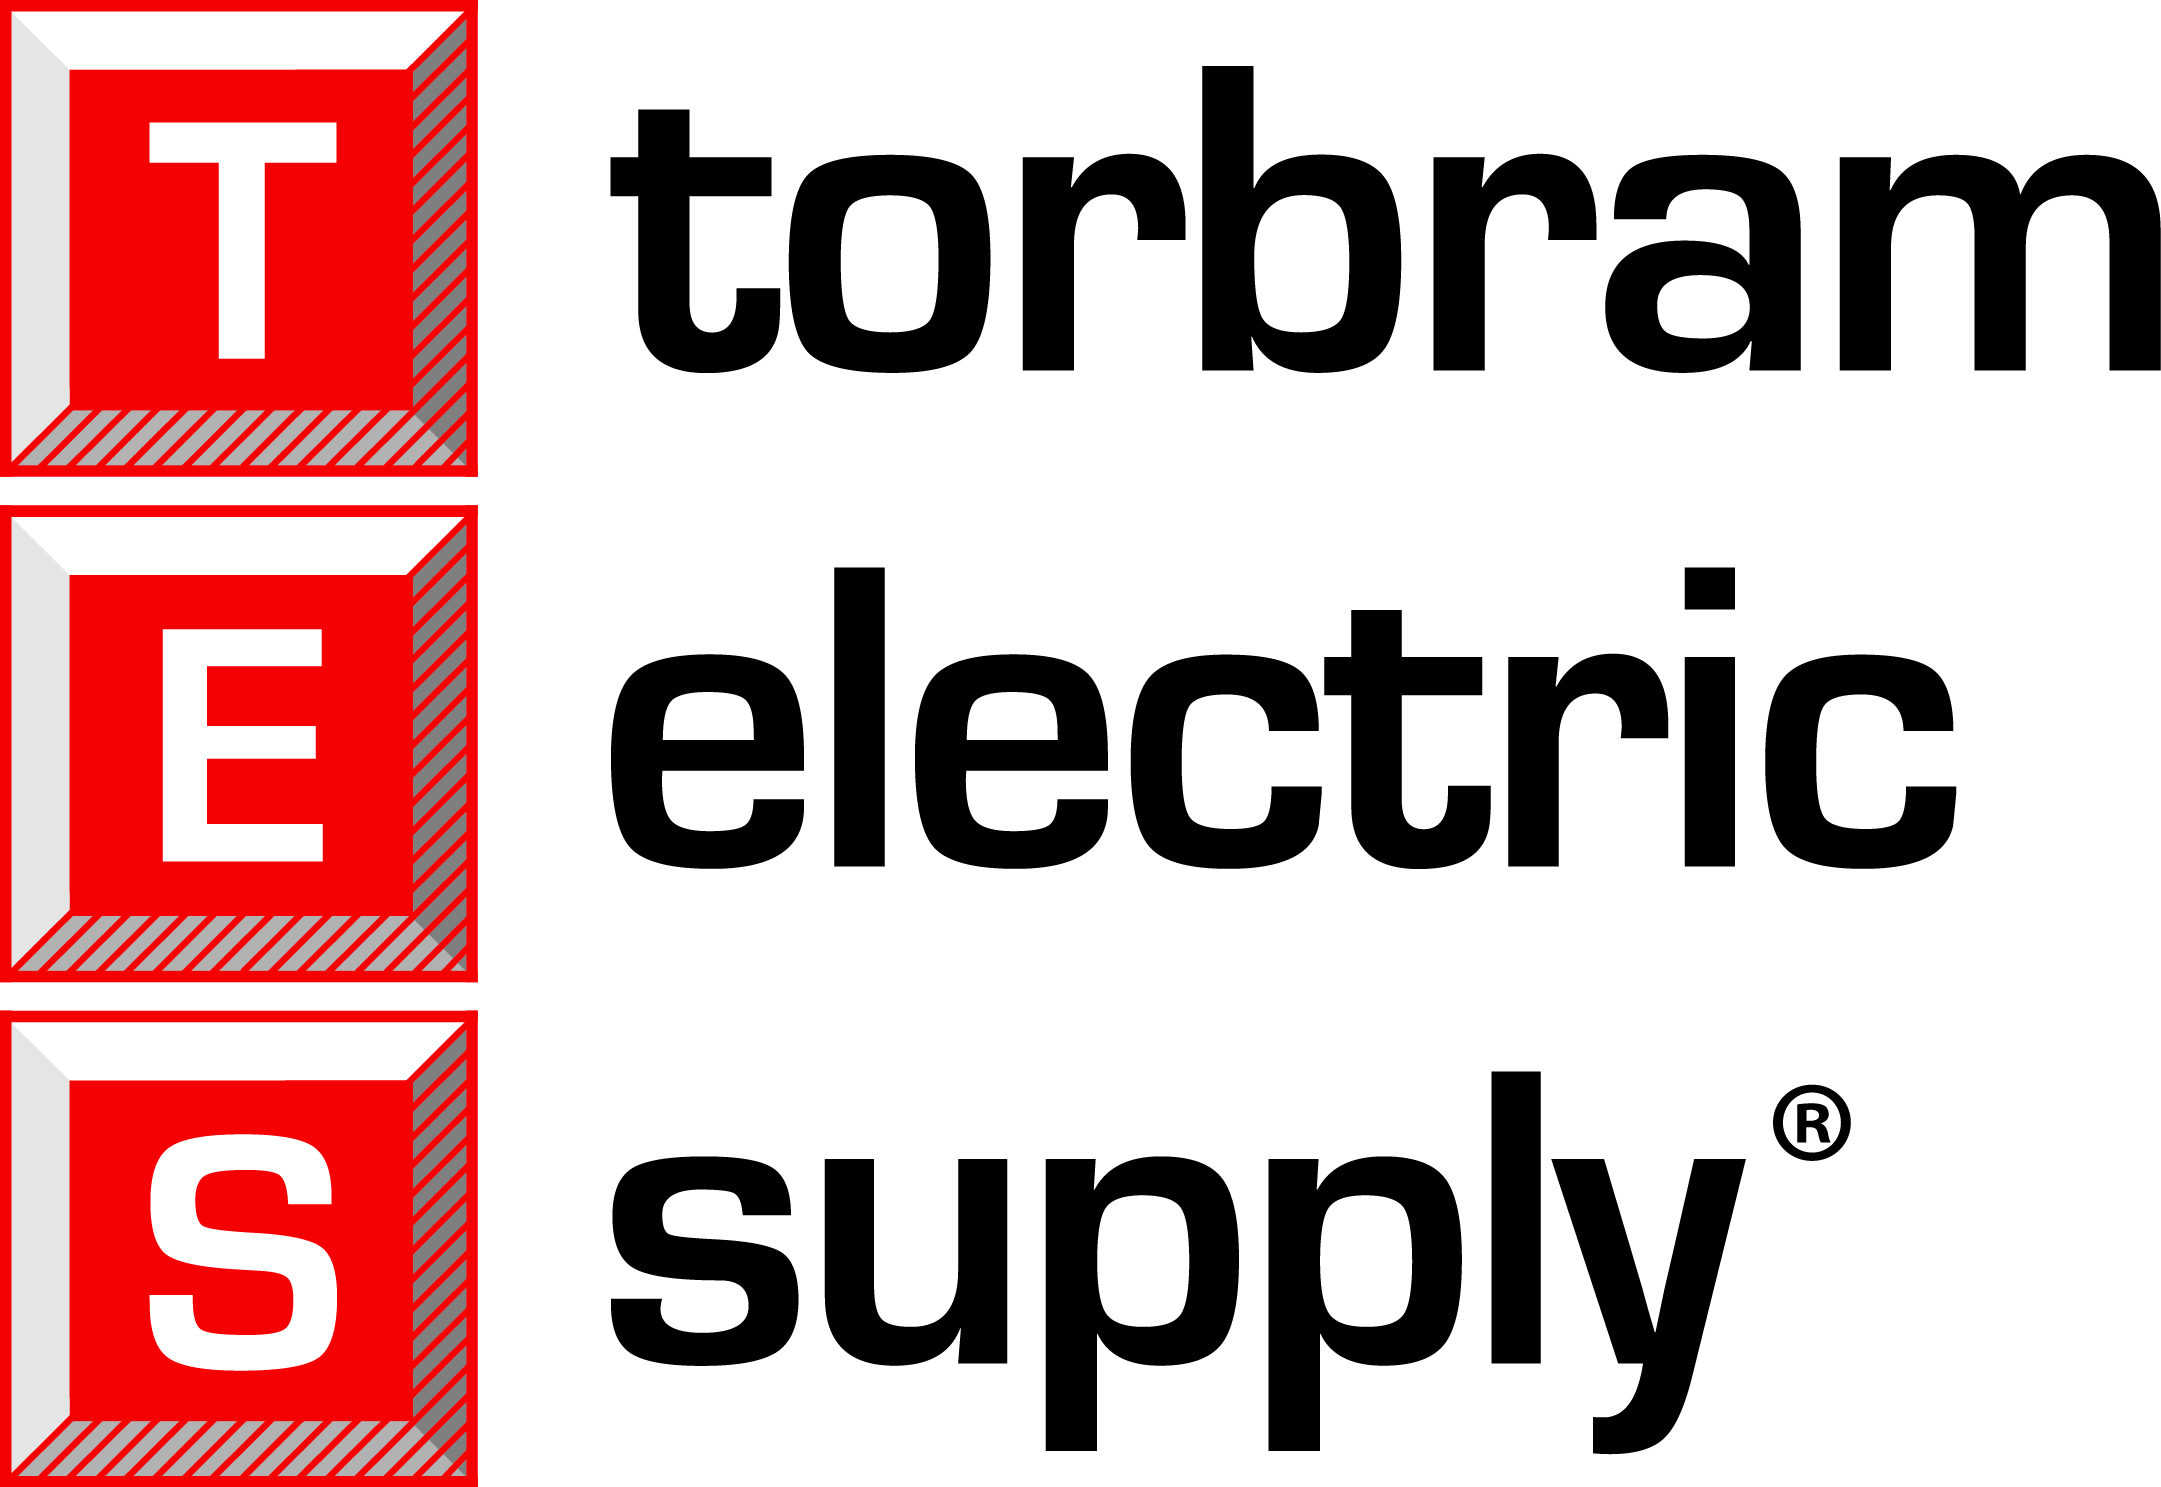 Torbram Electric Supply Co. Ltd. logo